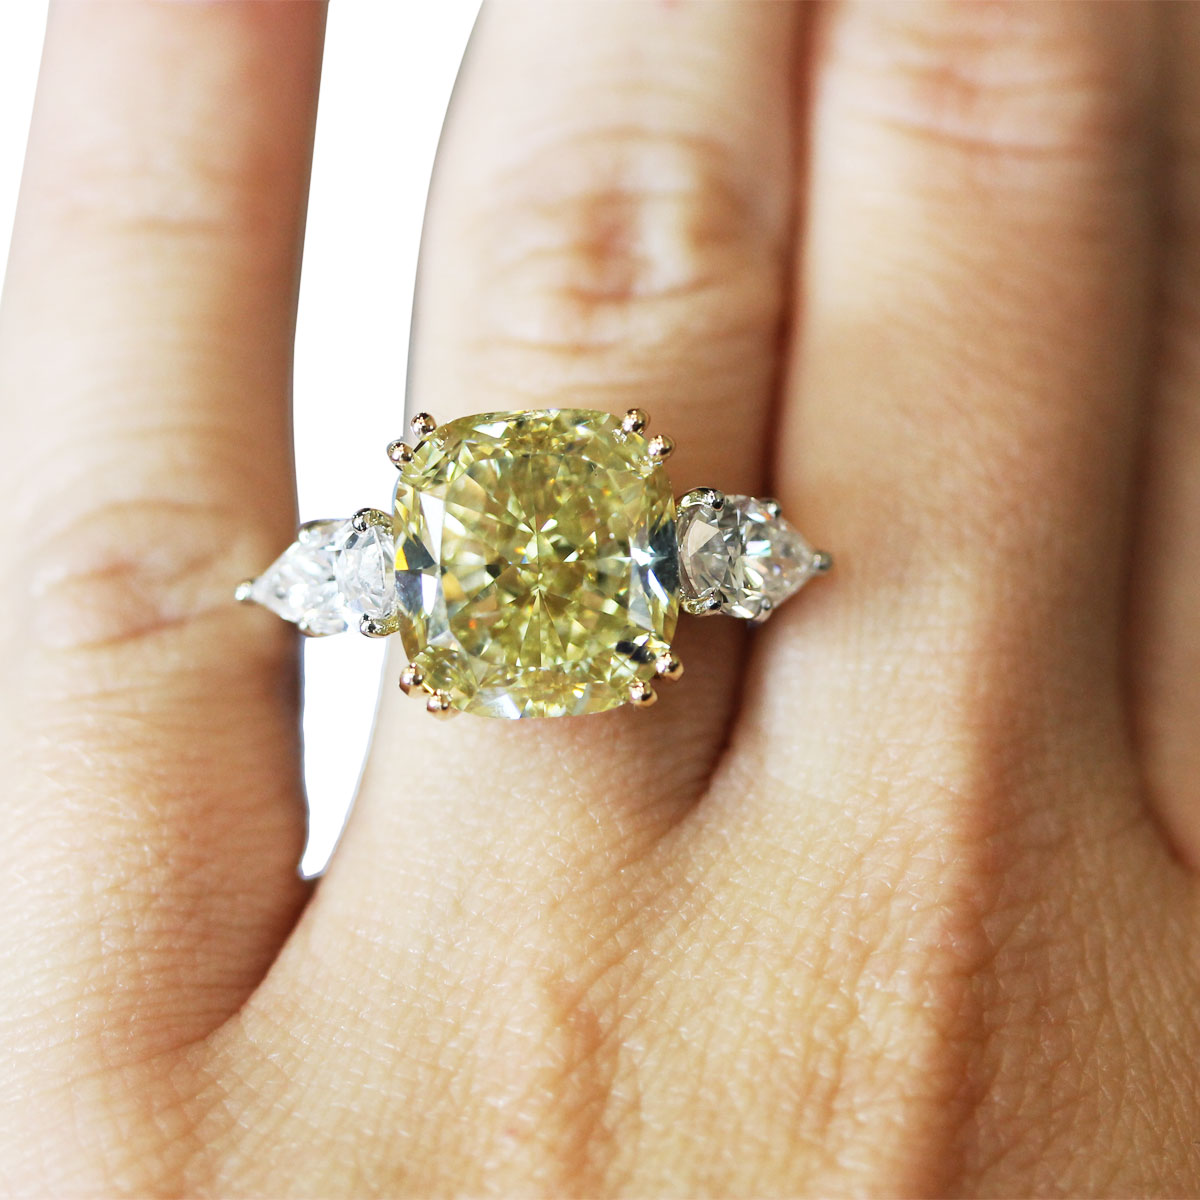 platinum 10ct fancy yellow cushion cut diamond engagement ring. Black Bedroom Furniture Sets. Home Design Ideas